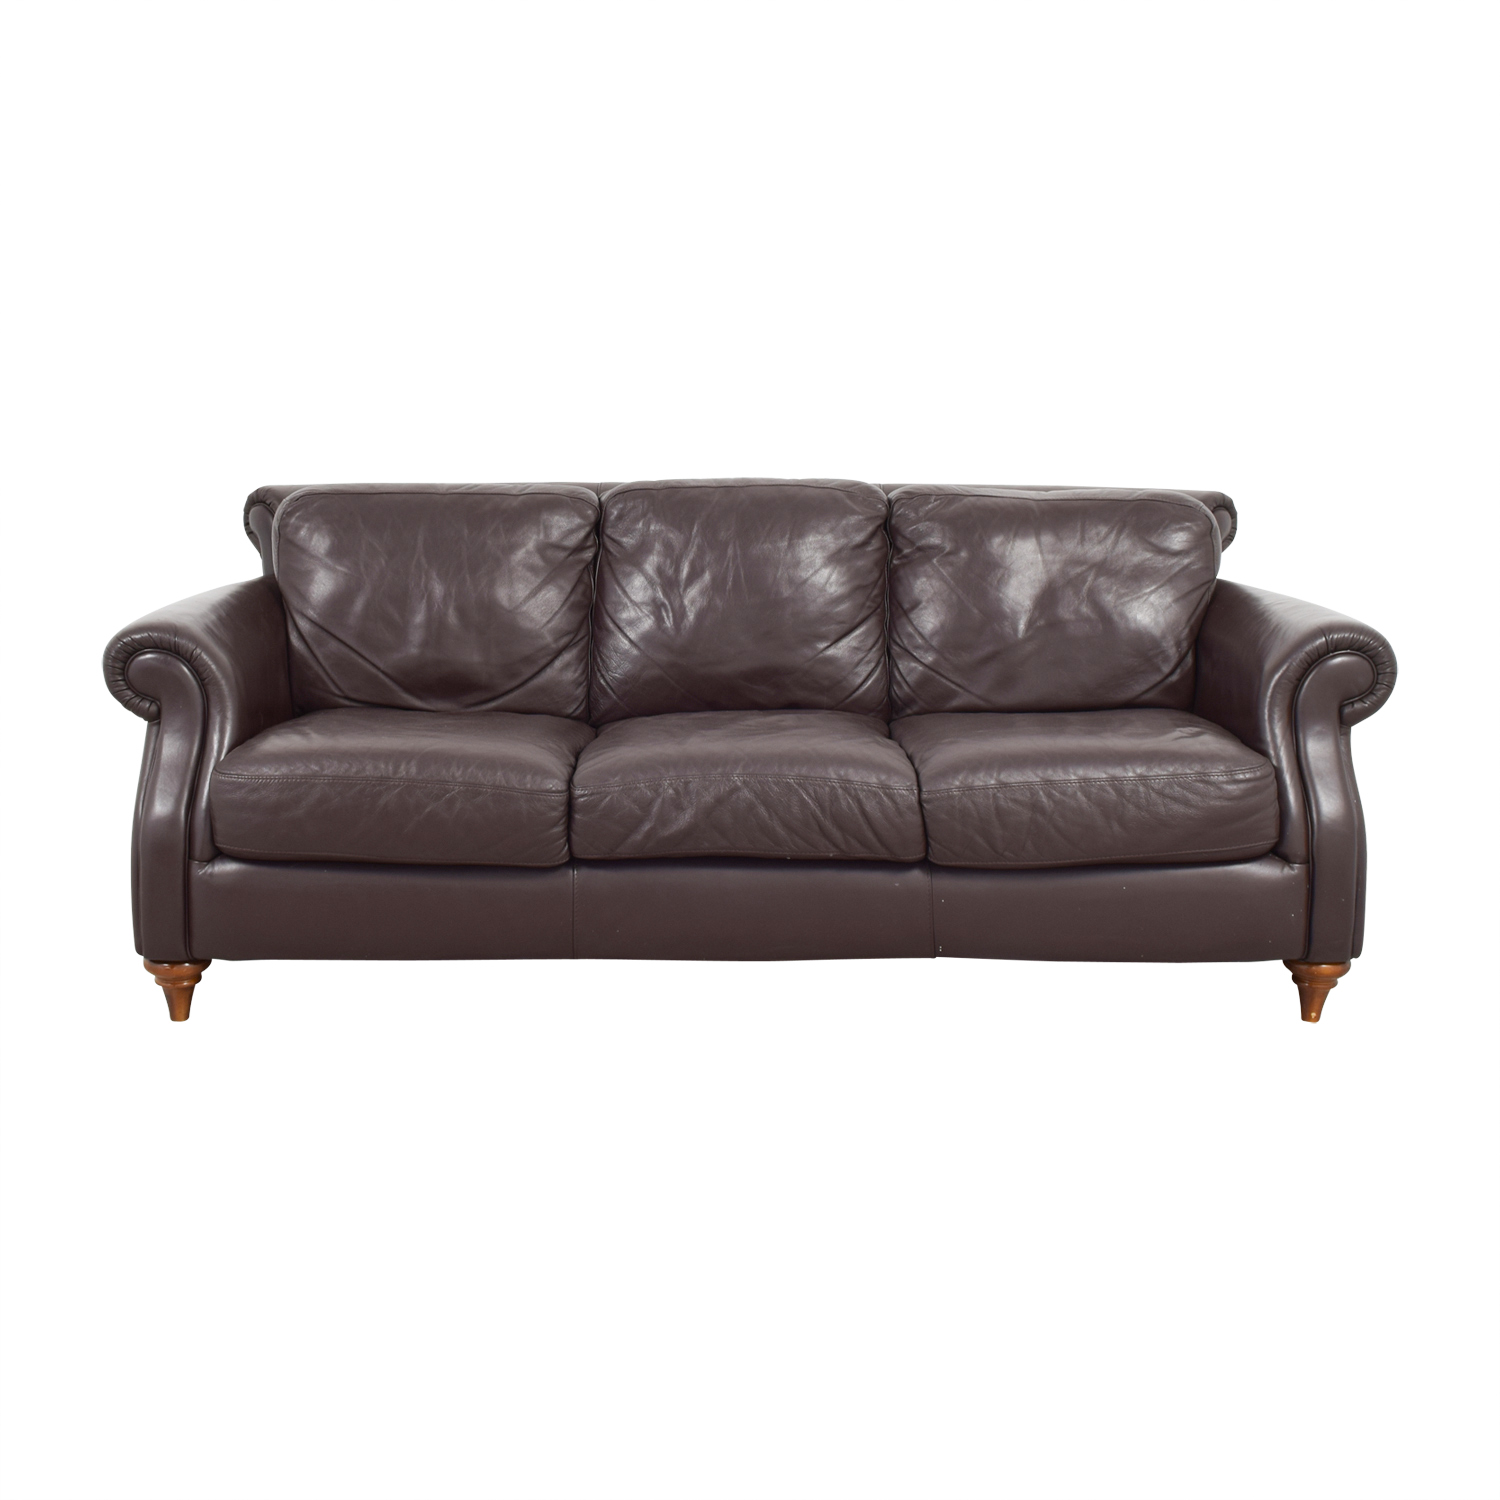 Natuzzi Brown Leather Three-Cushion Sofa / Classic Sofas